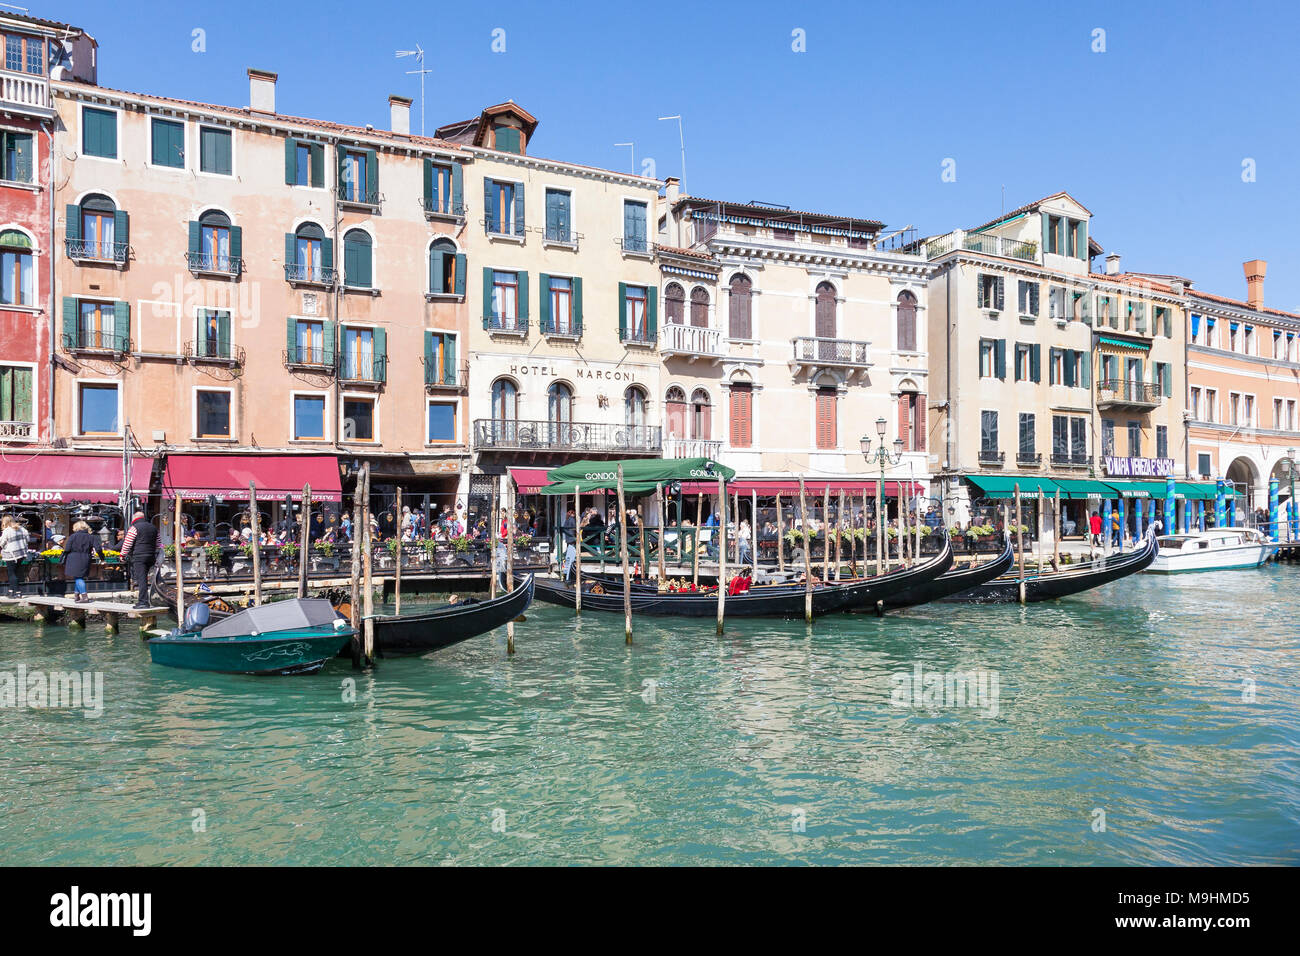 Tourists eating at restaurants (tavern, trattoria) along Riva del Vin, San Polo, Grand Canal, (Canal Grande) Venice, Veneto, Italy with historic palaz - Stock Image